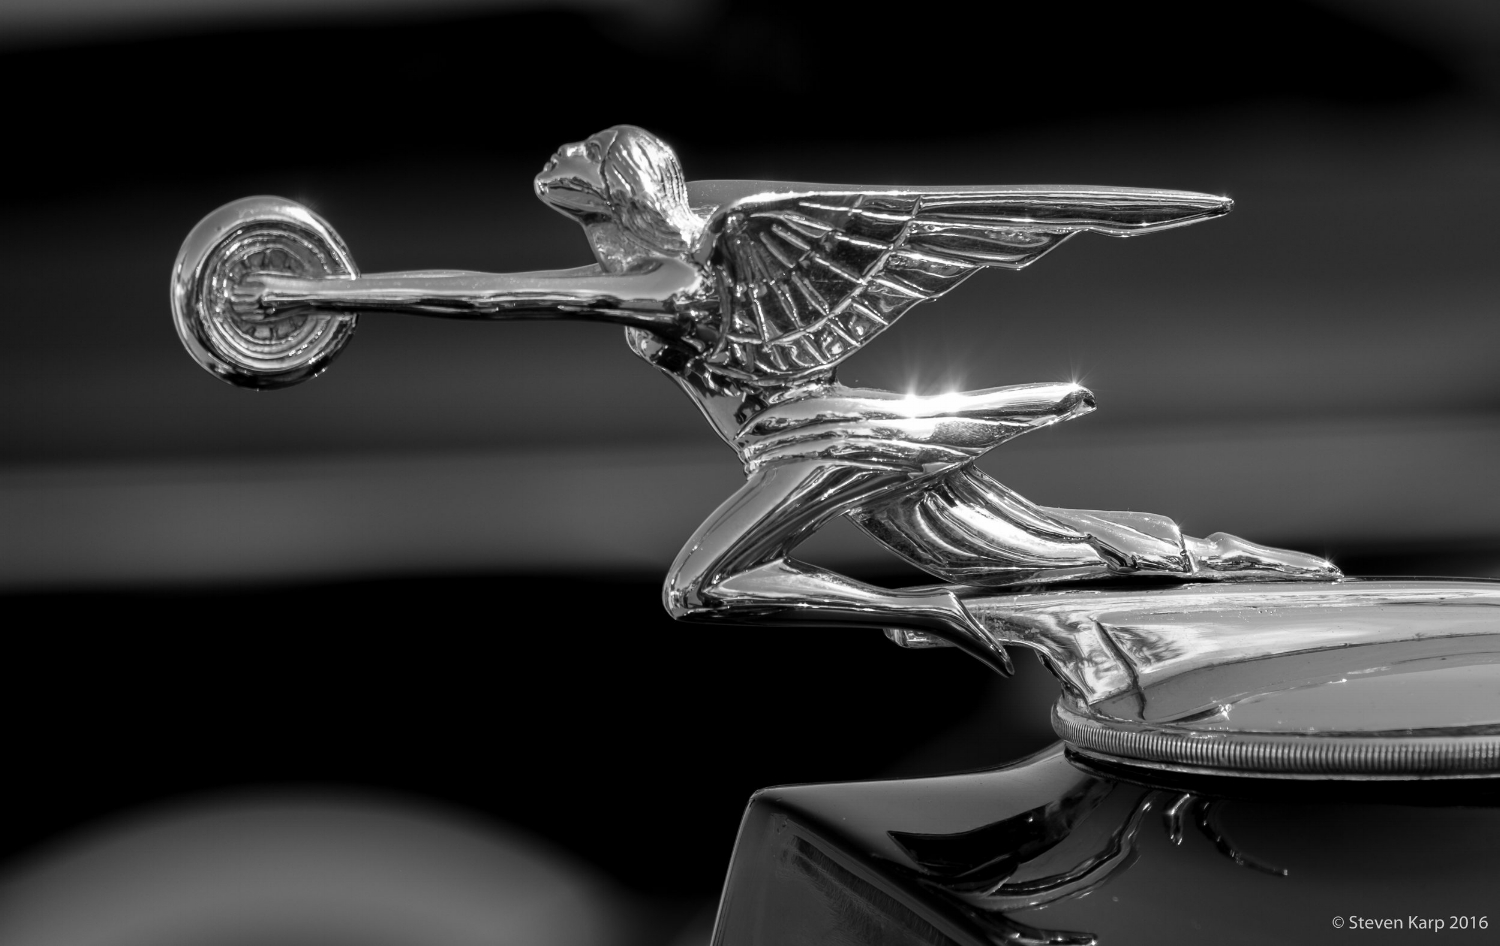 1937 Packard Hood Ornament